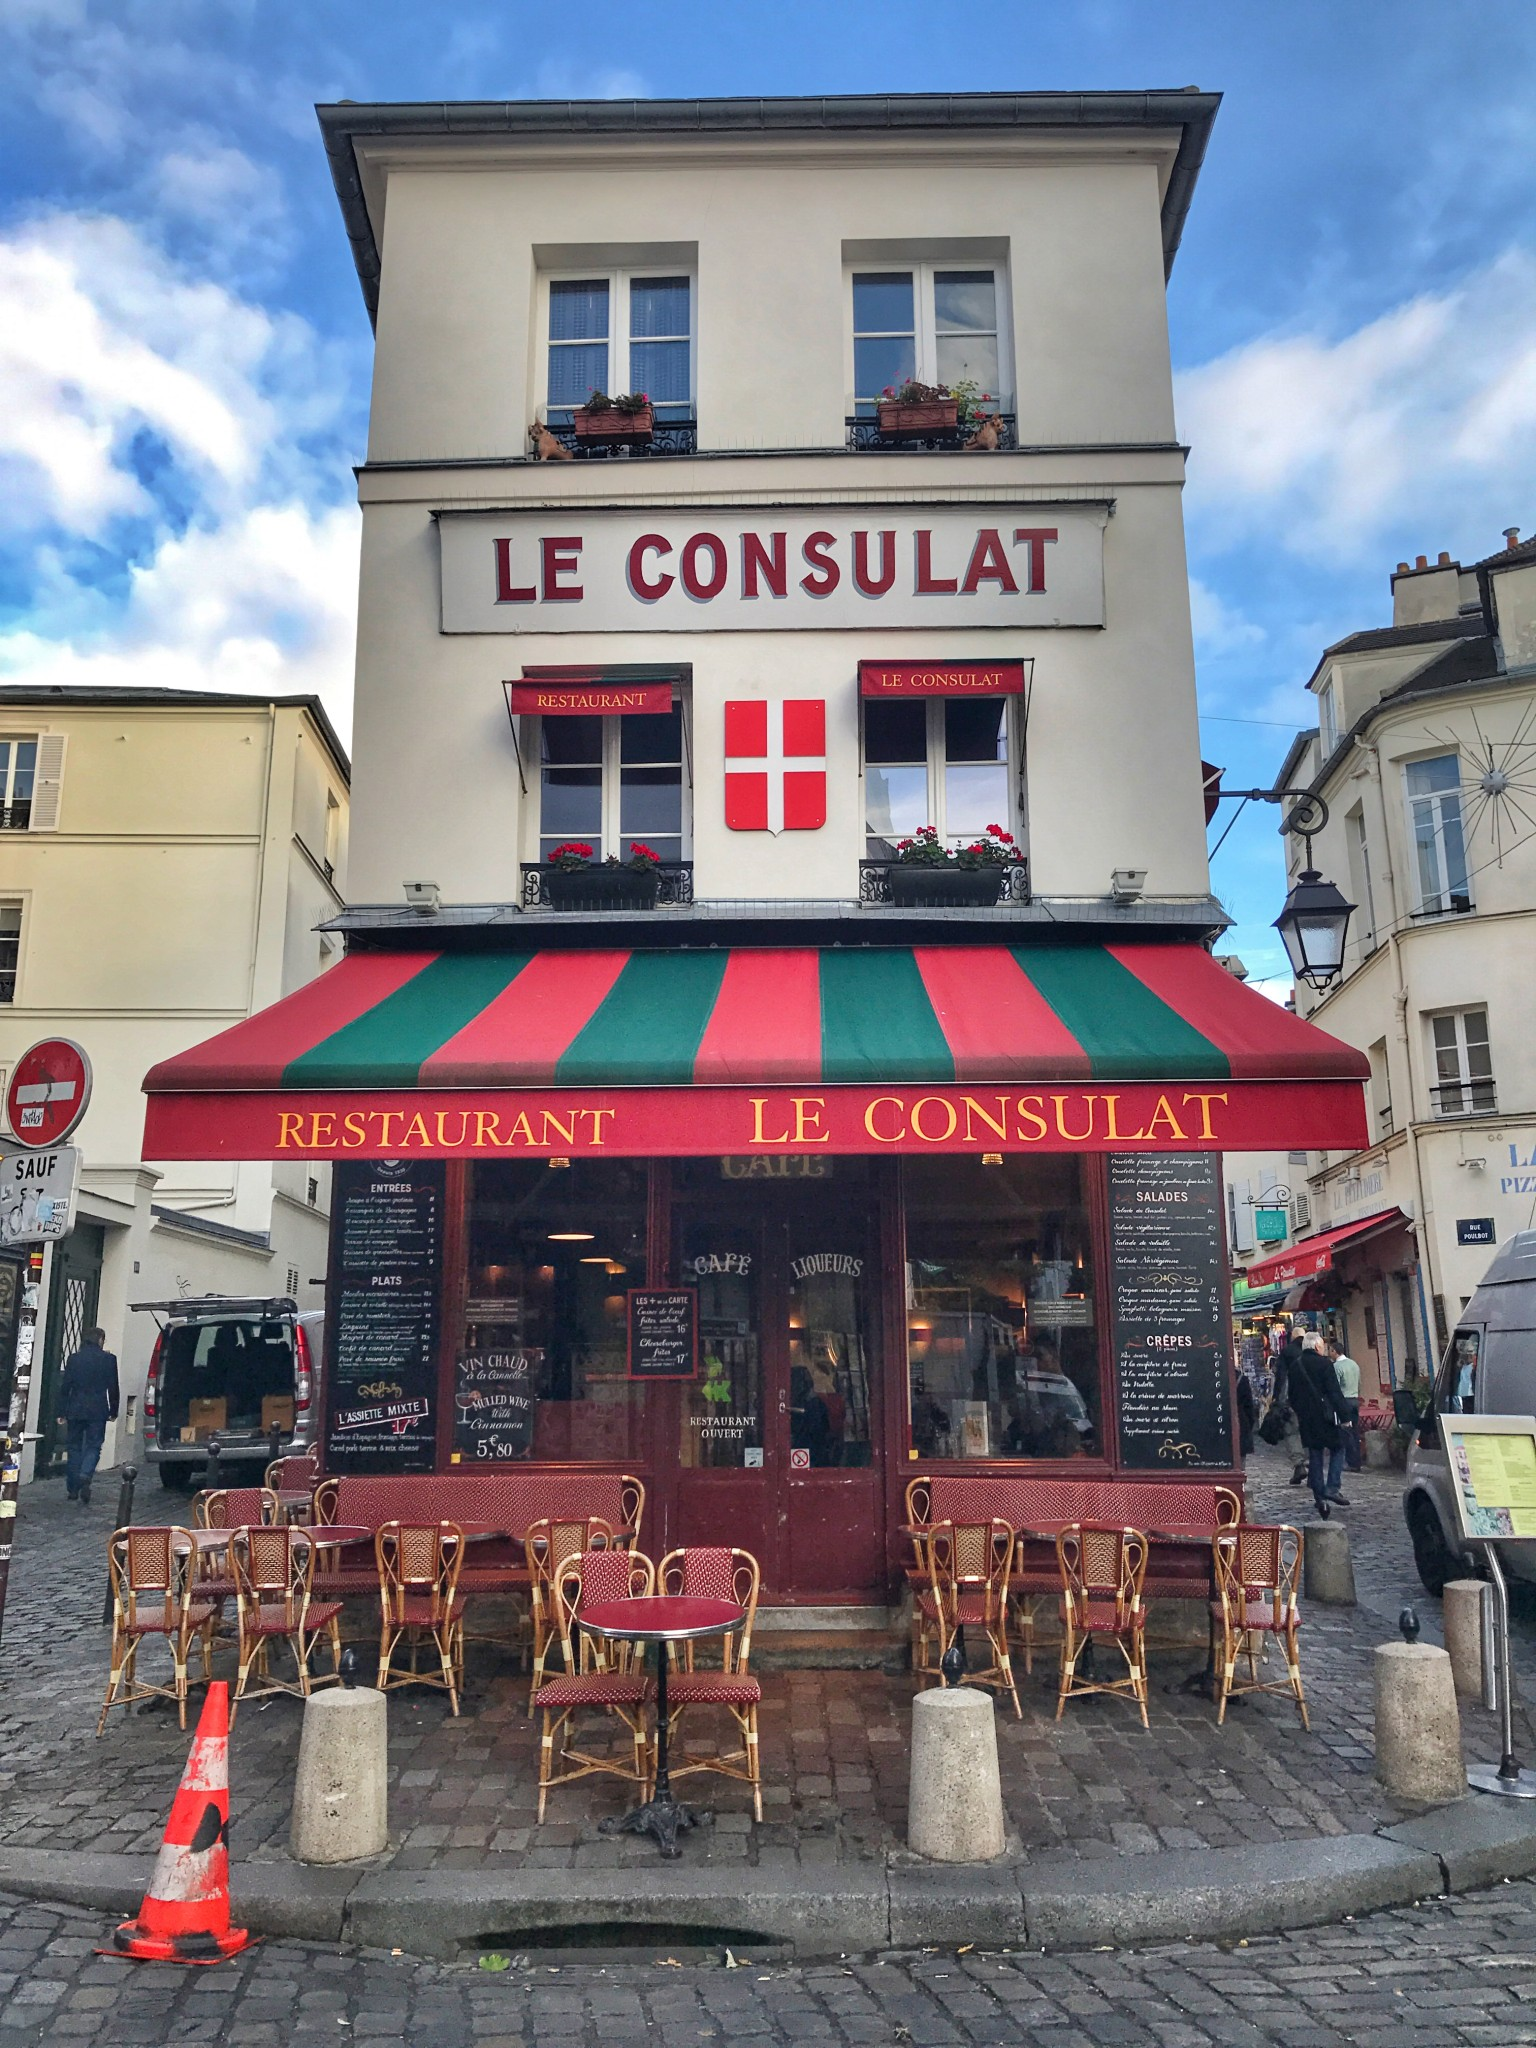 le consulat, montmatre, paris, the-alyst.com